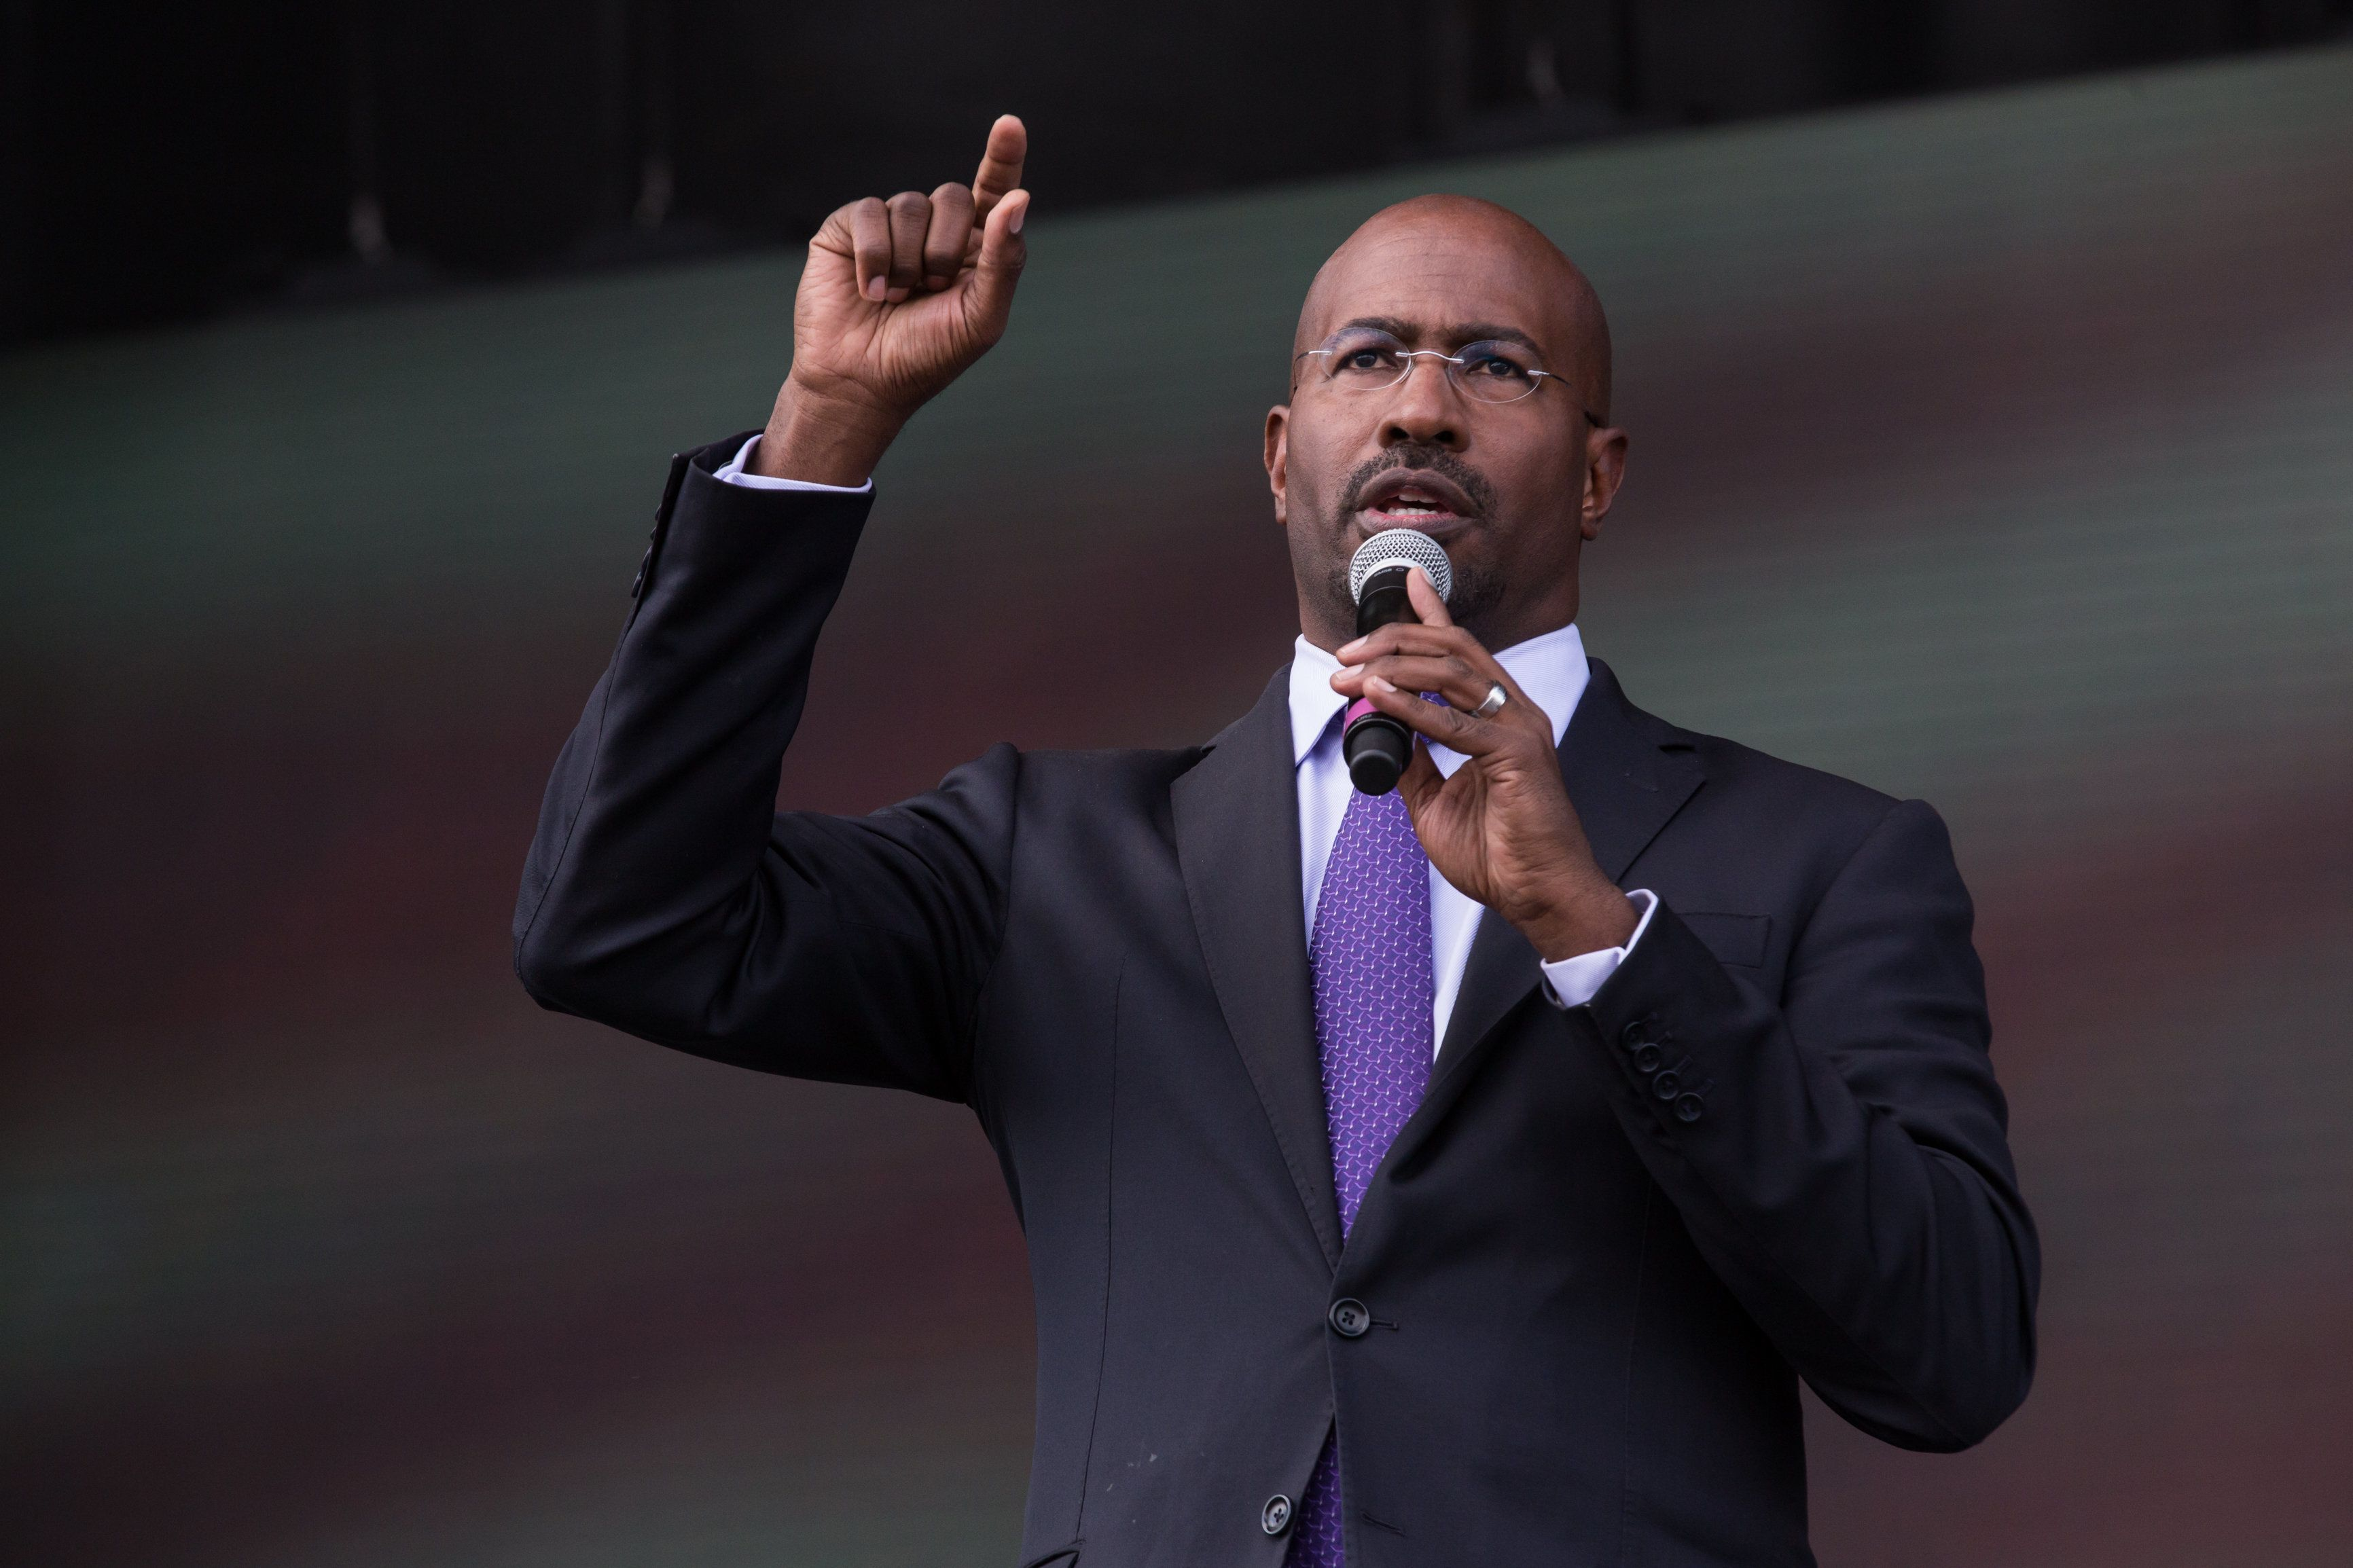 Van Jones' new Facebook video series aims to humanize political adversaries through in-person interactions.